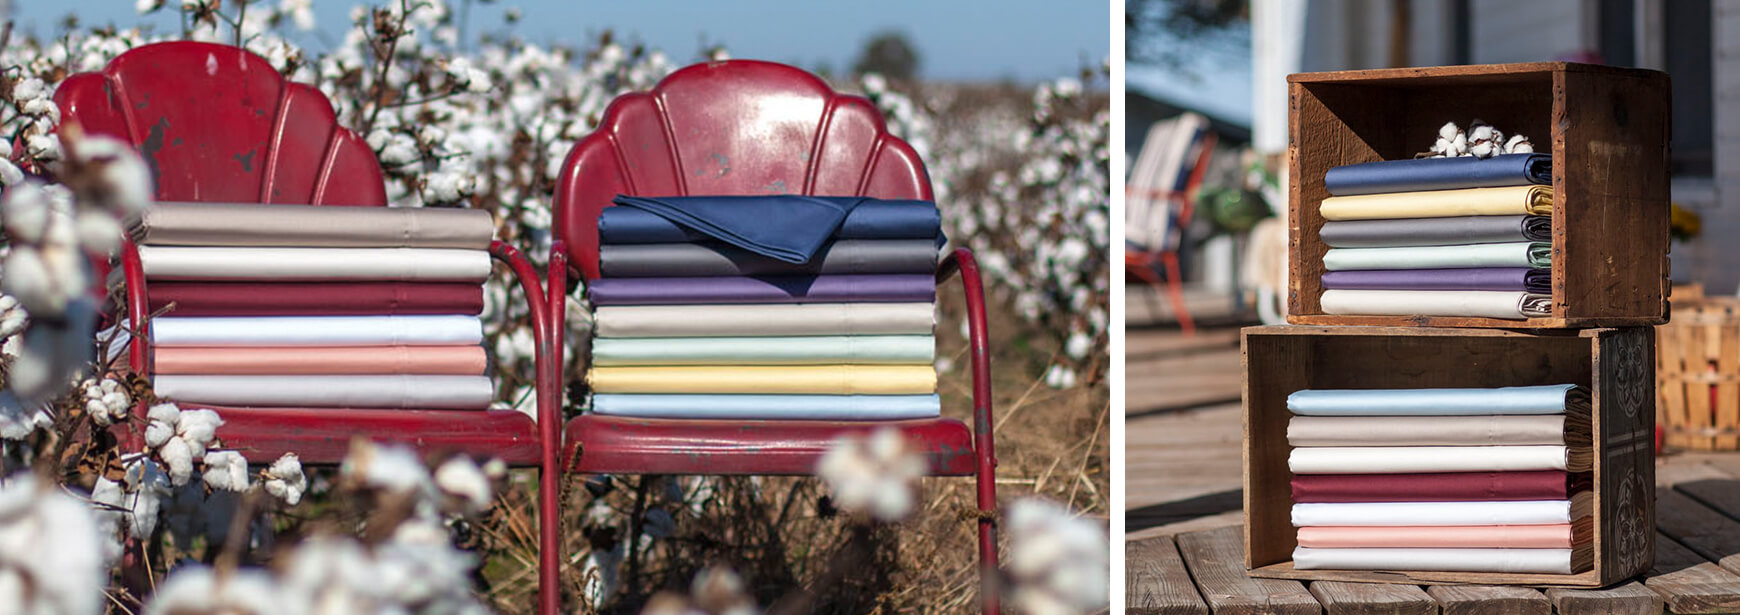 Sheets on chairs in a cotton field. Sheets in wooden crates on a porch.